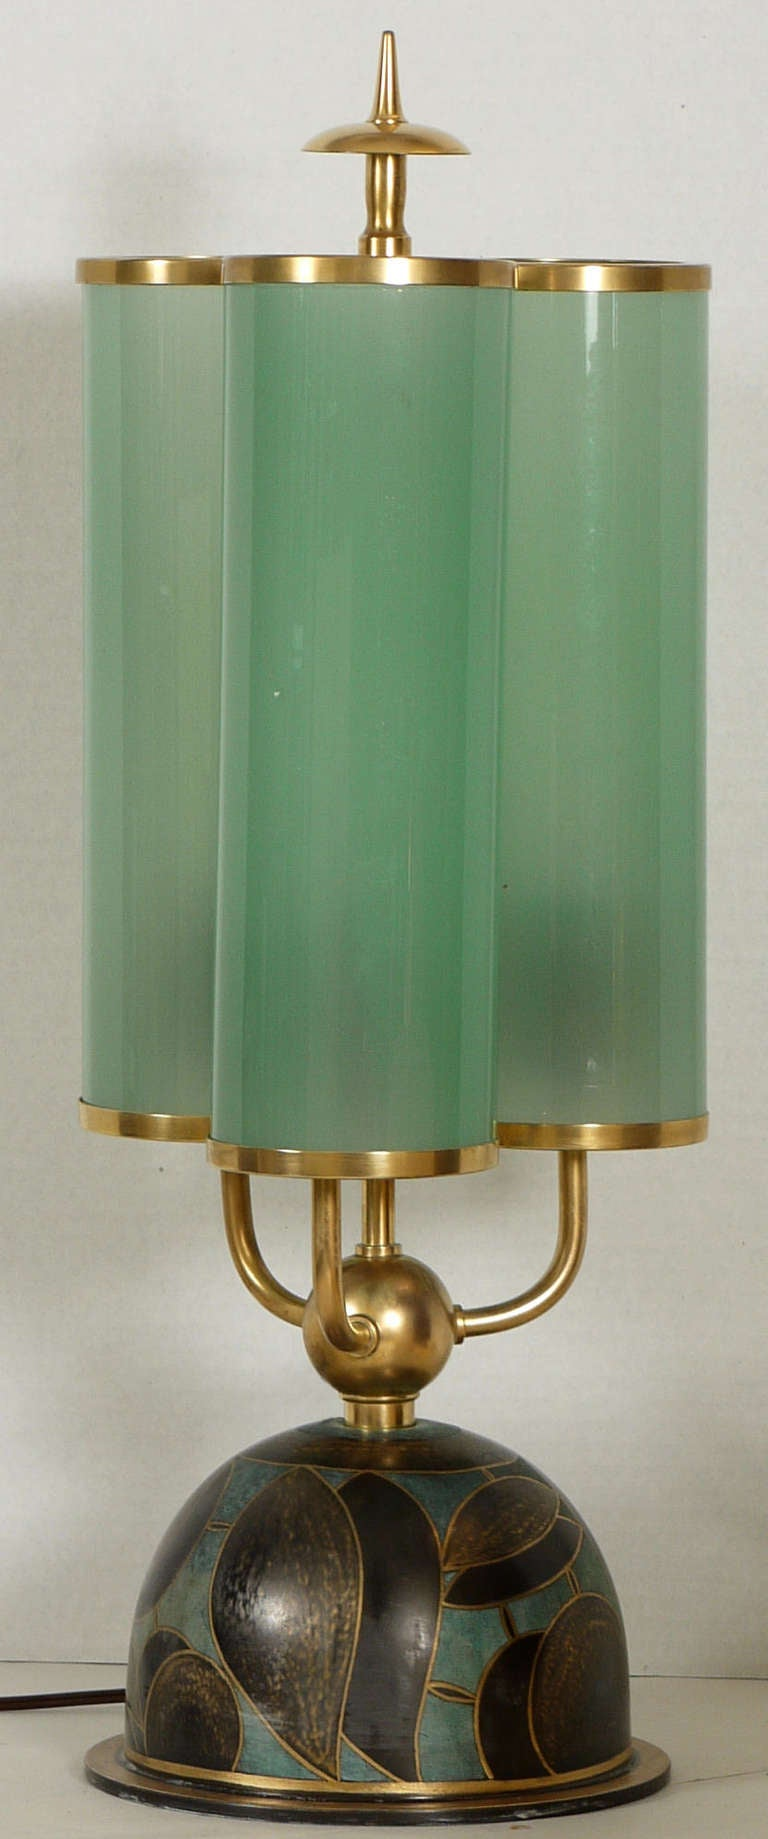 Rare Paul Haustein Table Lamp Circa 1929 For Sale At 1stdibs